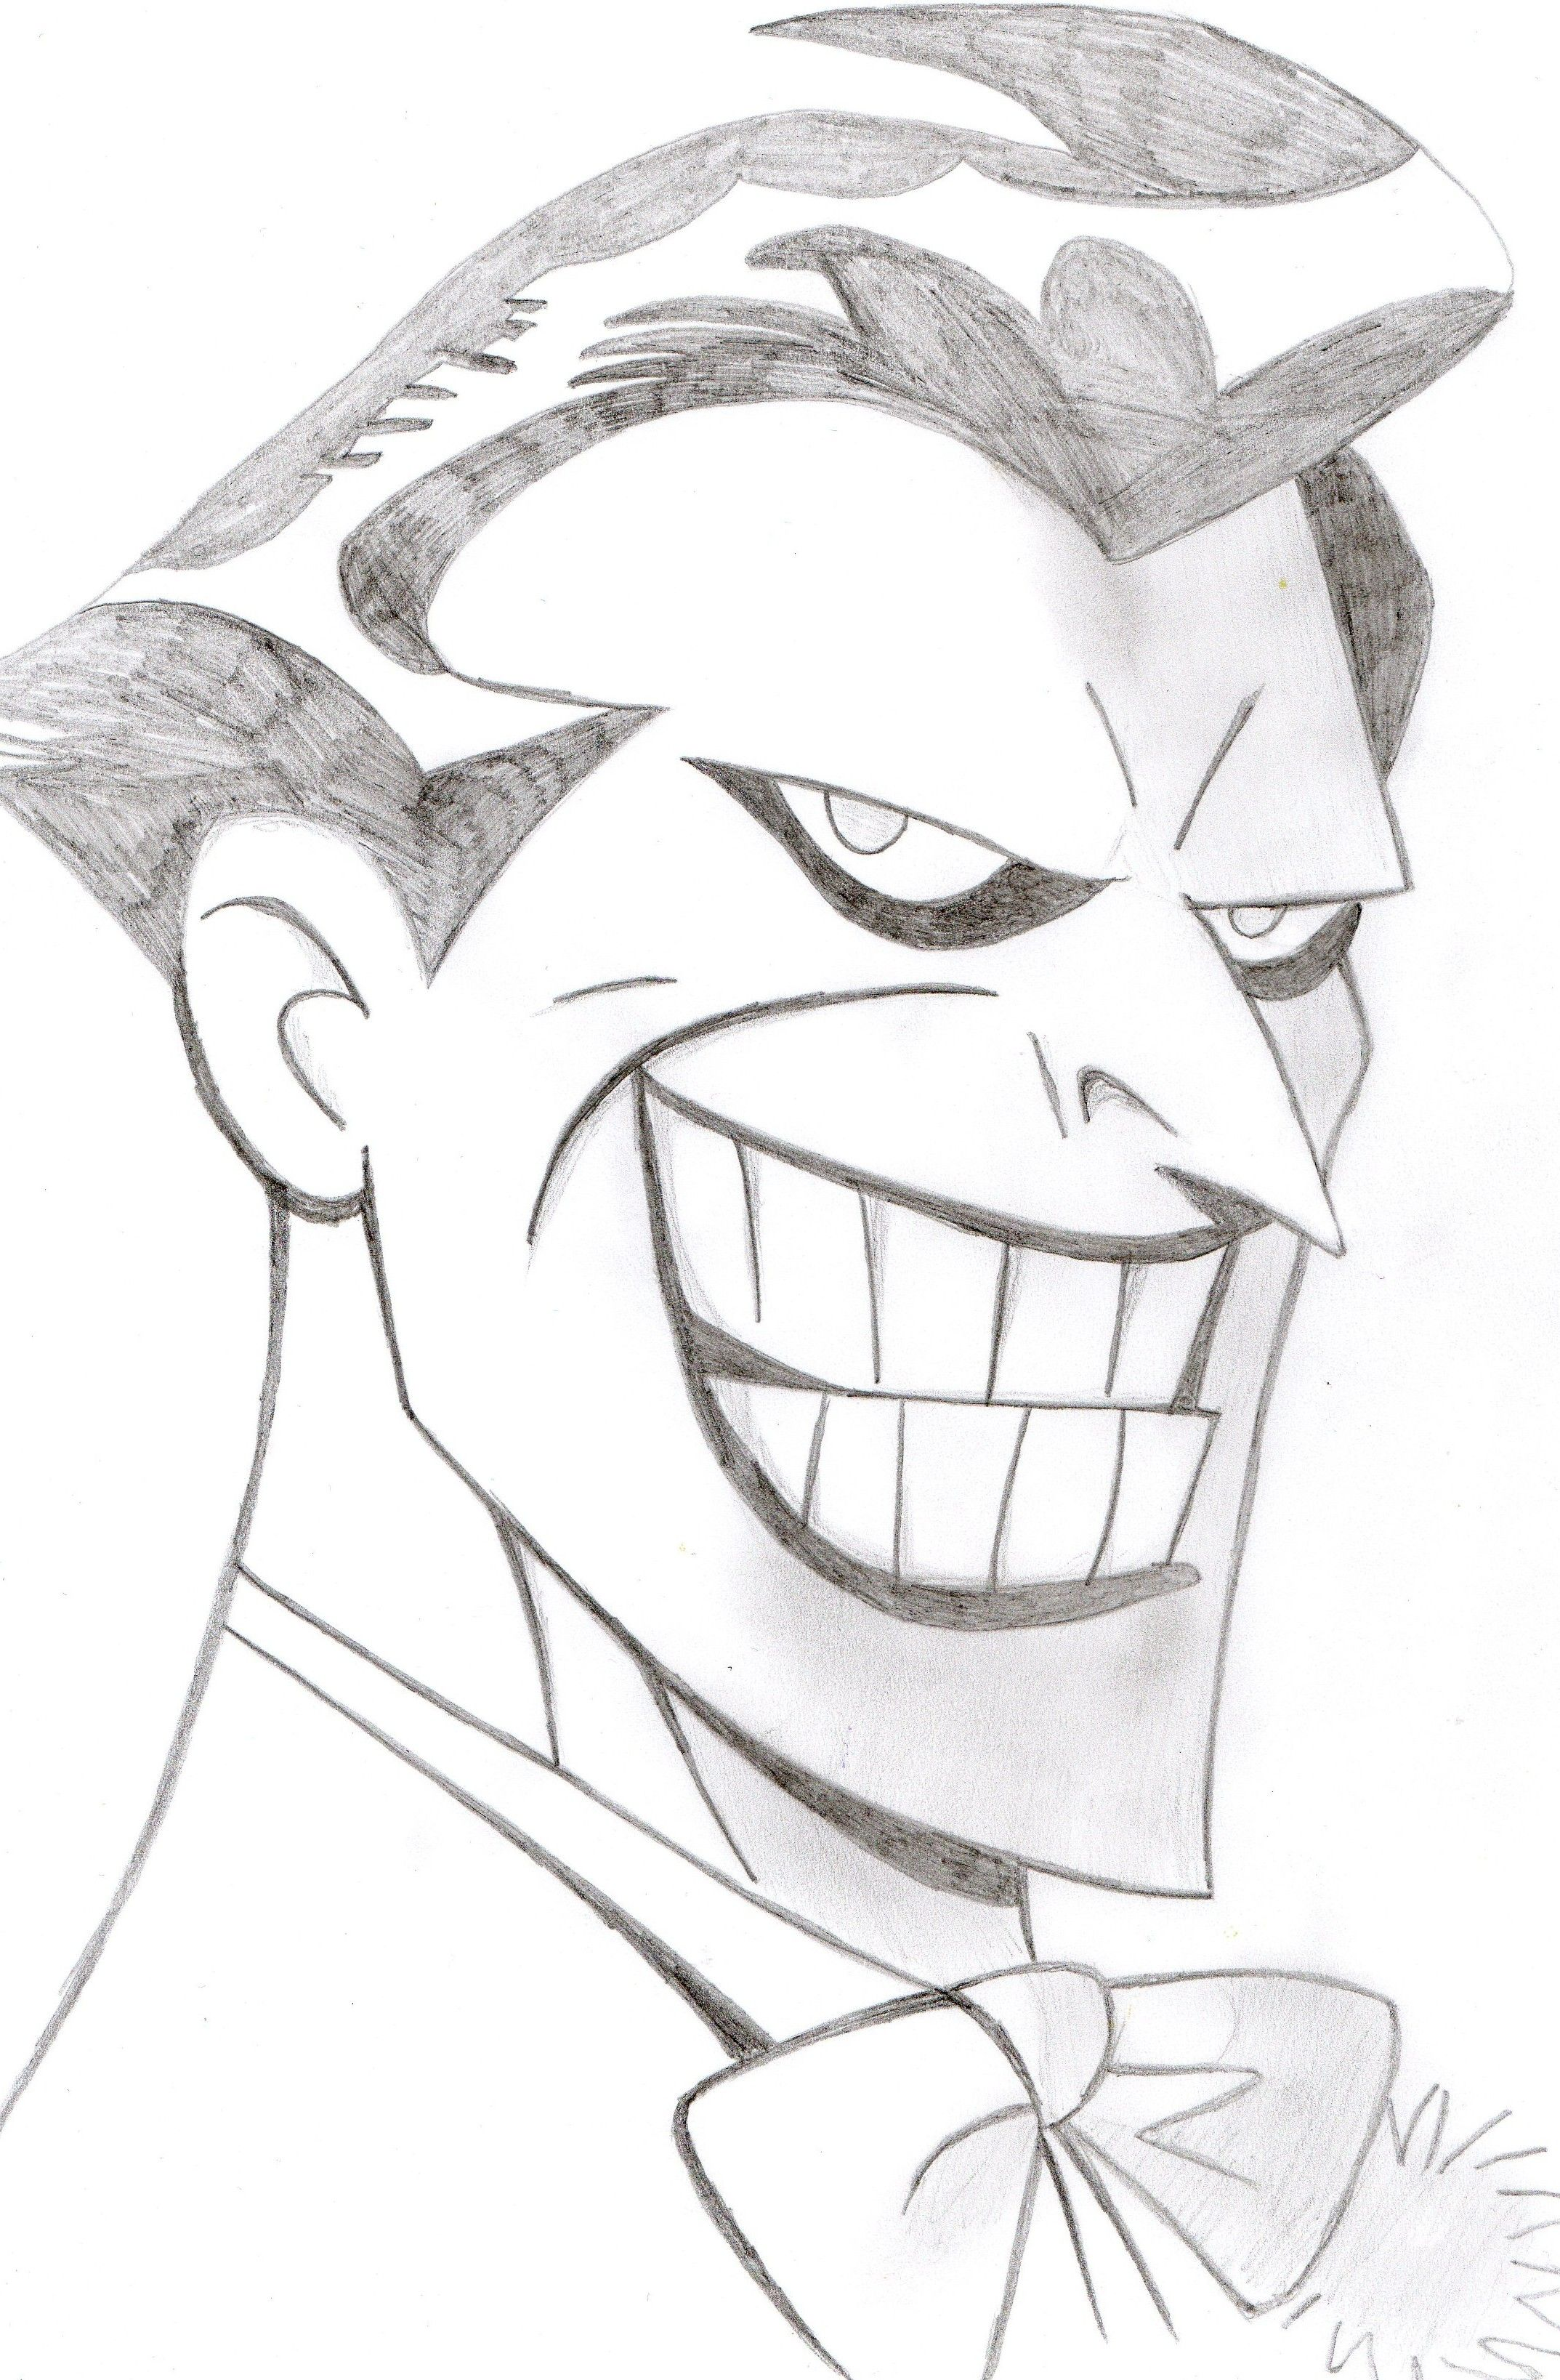 Related image cartoons in 2019 joker drawings cartoon pencil